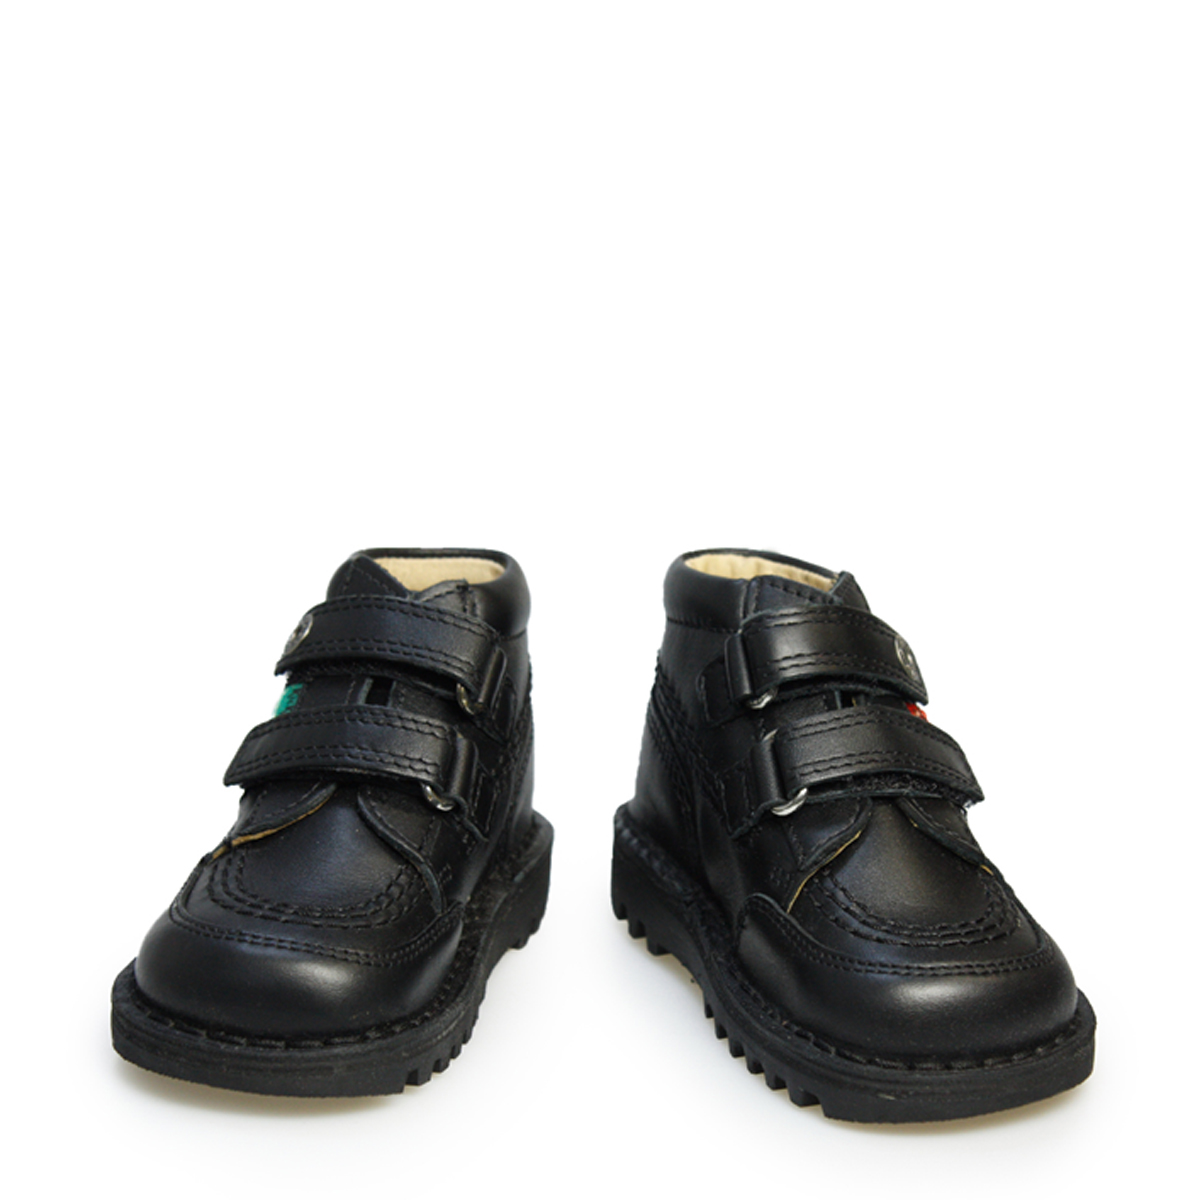 Black kicker sandals - Kickers Kids Toddler Ankle Boots Strap Black Leather Velcro Shoes Back To School